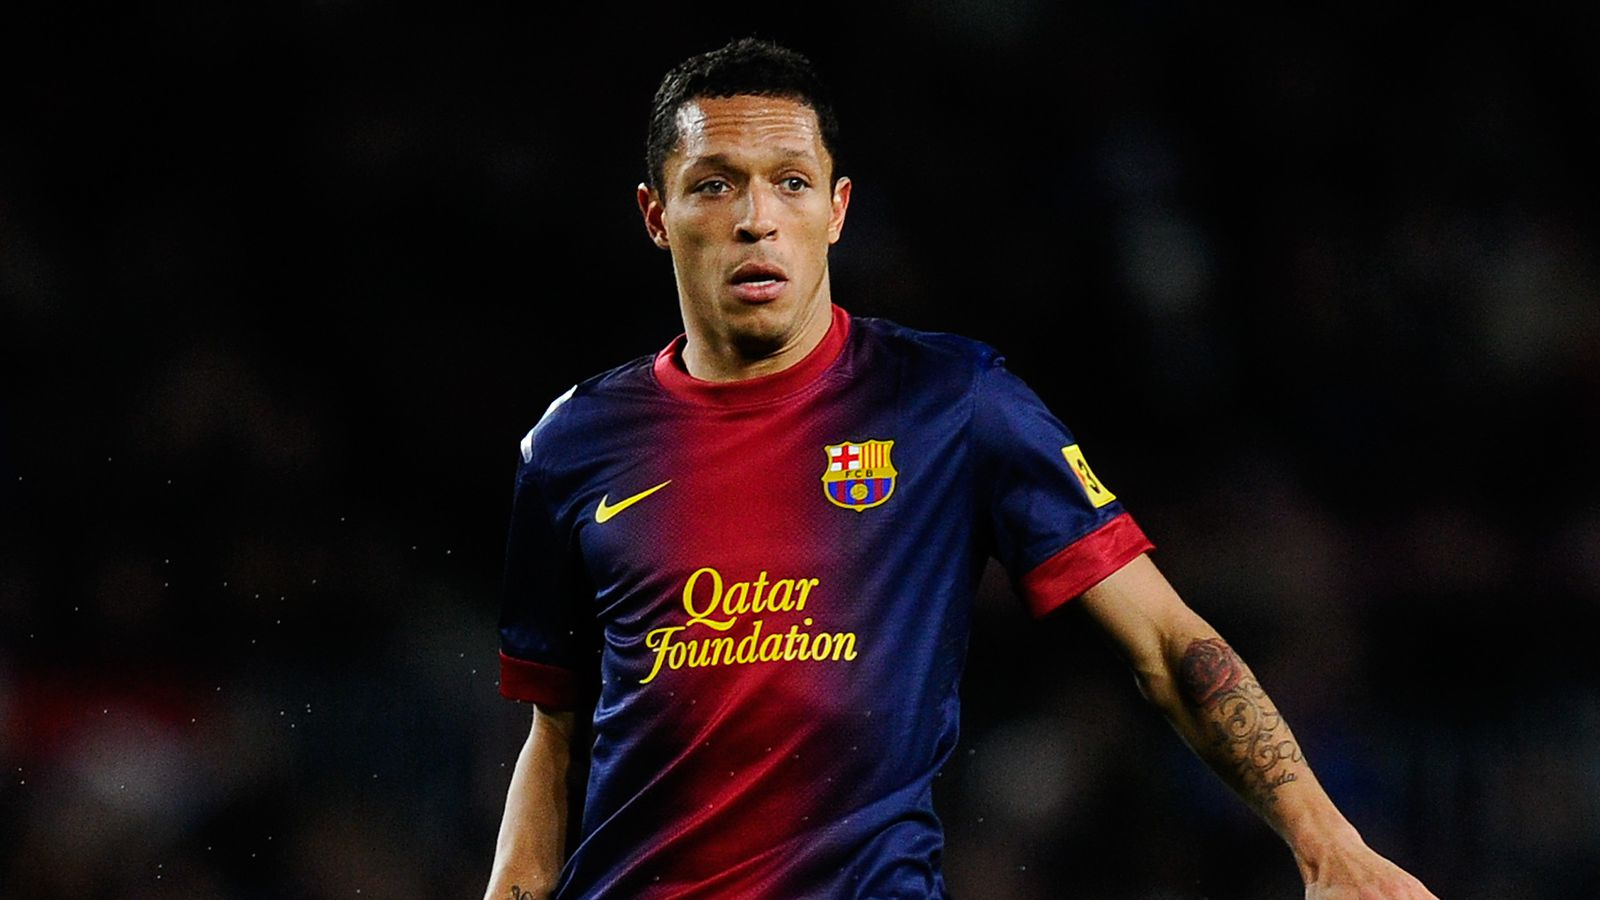 Report: Barcelona and Roma agree deal for Adriano Correia